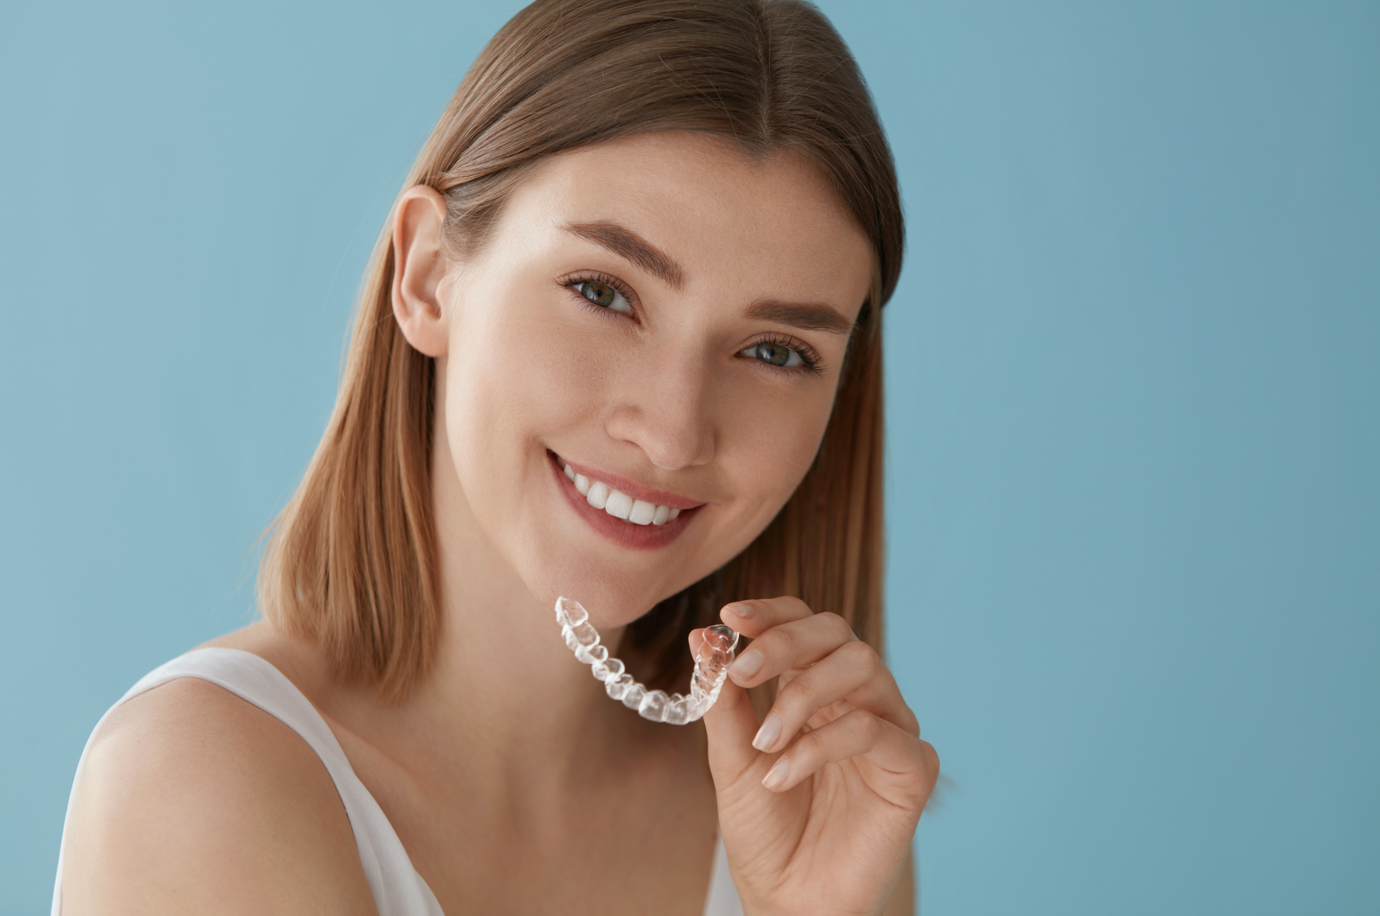 woman holding clear braces